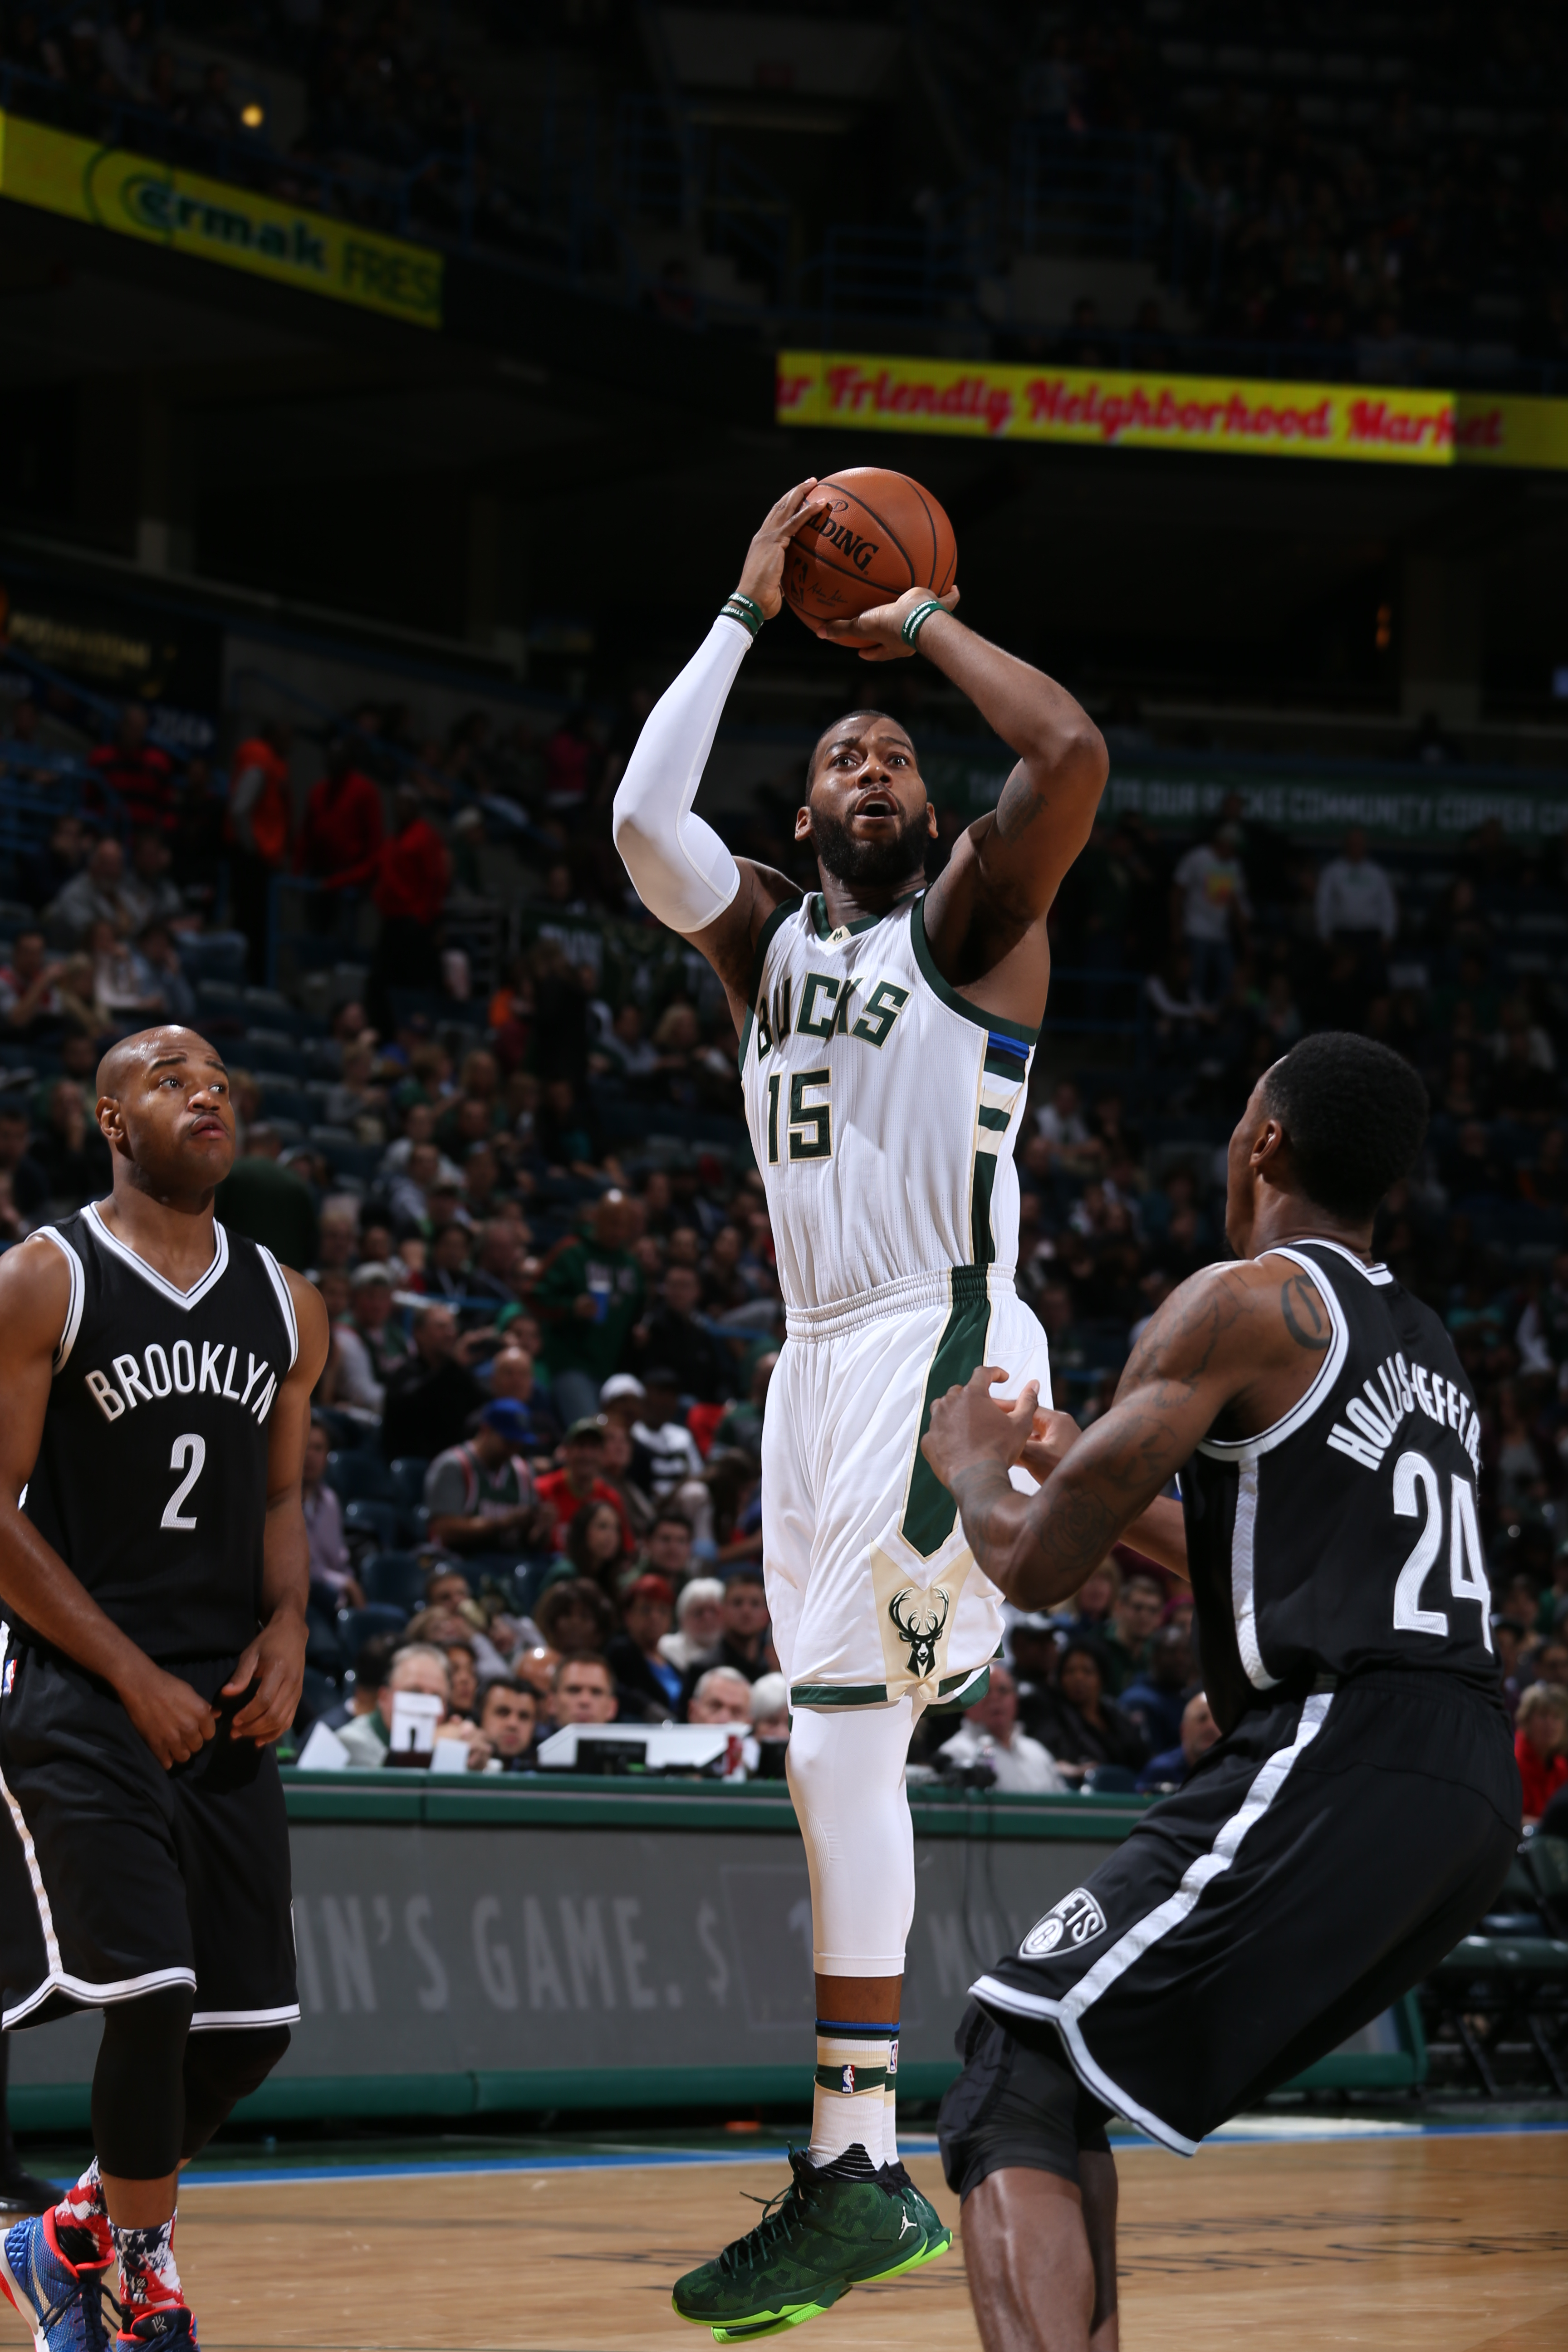 MILWAUKEE, WI - NOVEMBER 7:  Greg Monroe #15 of the Milwaukee Bucks shoots against Rondae Hollis-Jefferson #24 of the Brooklyn Nets on November 7, 2015 at the BMO Harris Bradley Center in Milwaukee, Wisconsin. (Photo by Gary Dineen/NBAE via Getty Images)